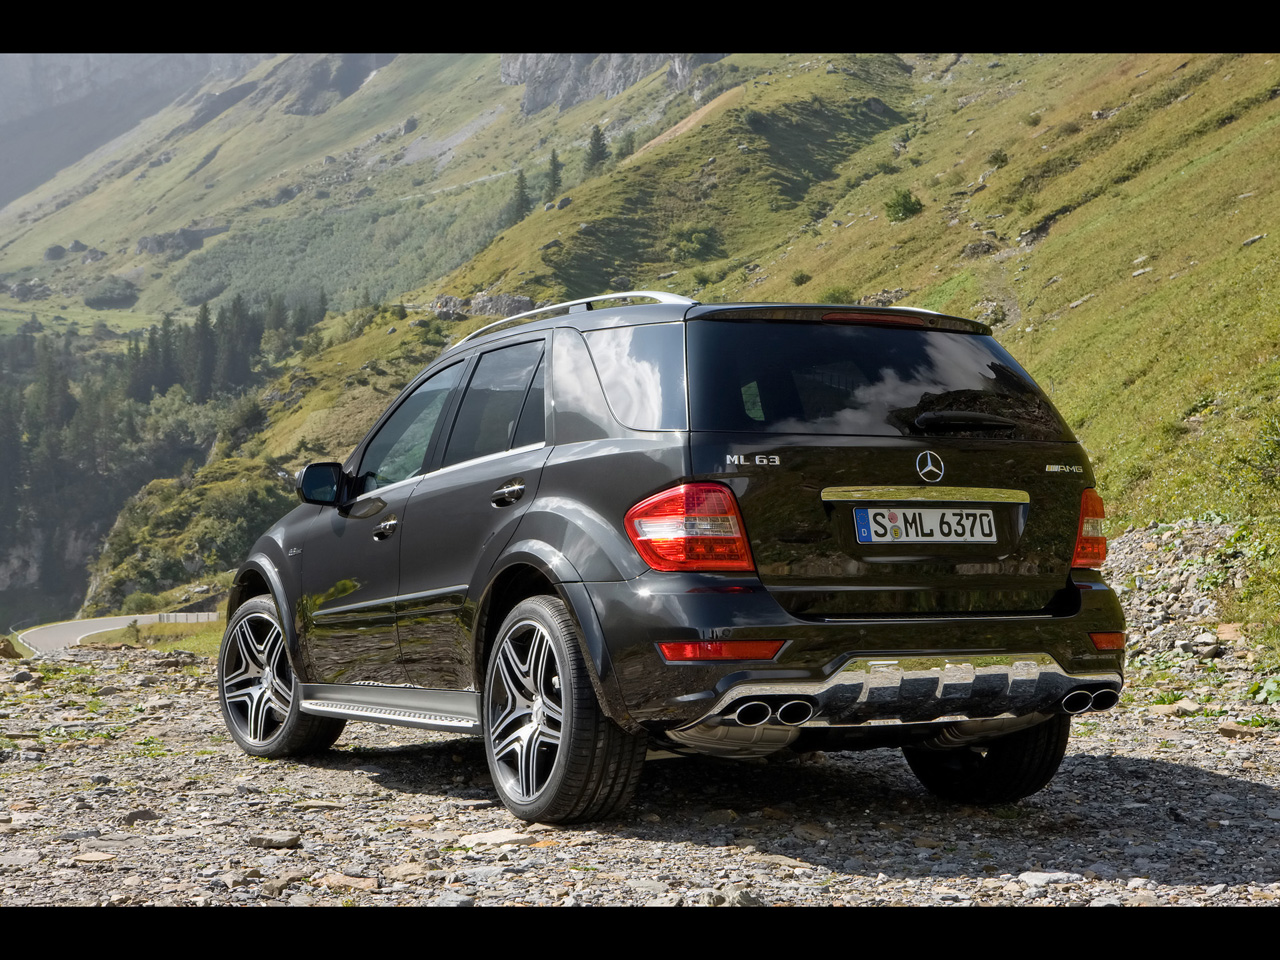 mercedes-benz ml 63 amg-pic. 3